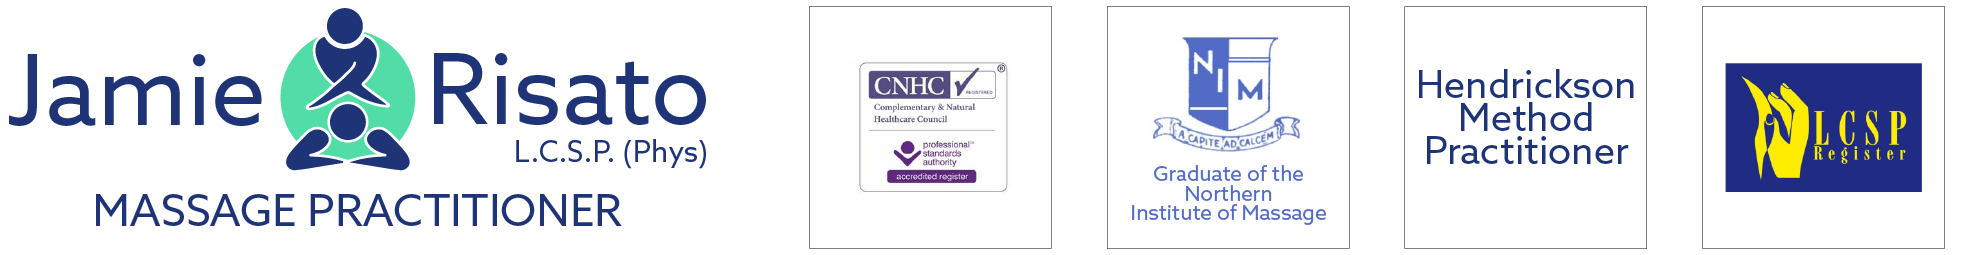 Sports and clinical massage therapy in Whitby Scarborough North Yorkshire Logo. Showing Jamie's qualifications and associations with CNHC, Northern Institute of Massage, Hendrickson Method and LCSP register.